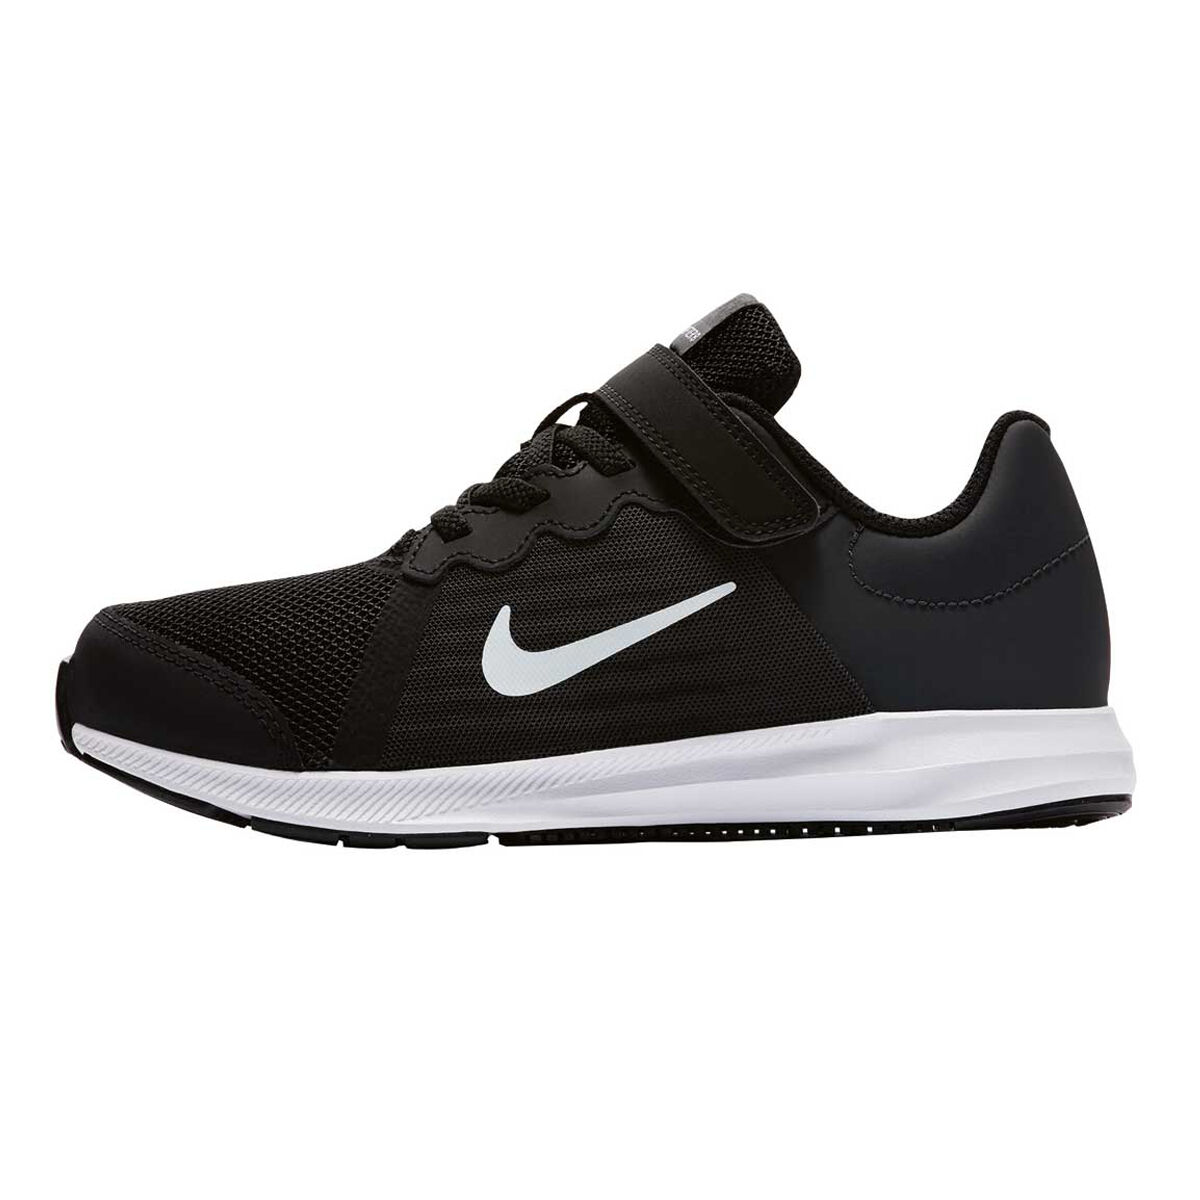 318e31145538 ... lunarepic low flyknit unlimited 2 d772c 5a237 new style nike  downshifter 8 junior running shoes black white us 11 black white a76e7  b2a7a clearance ...